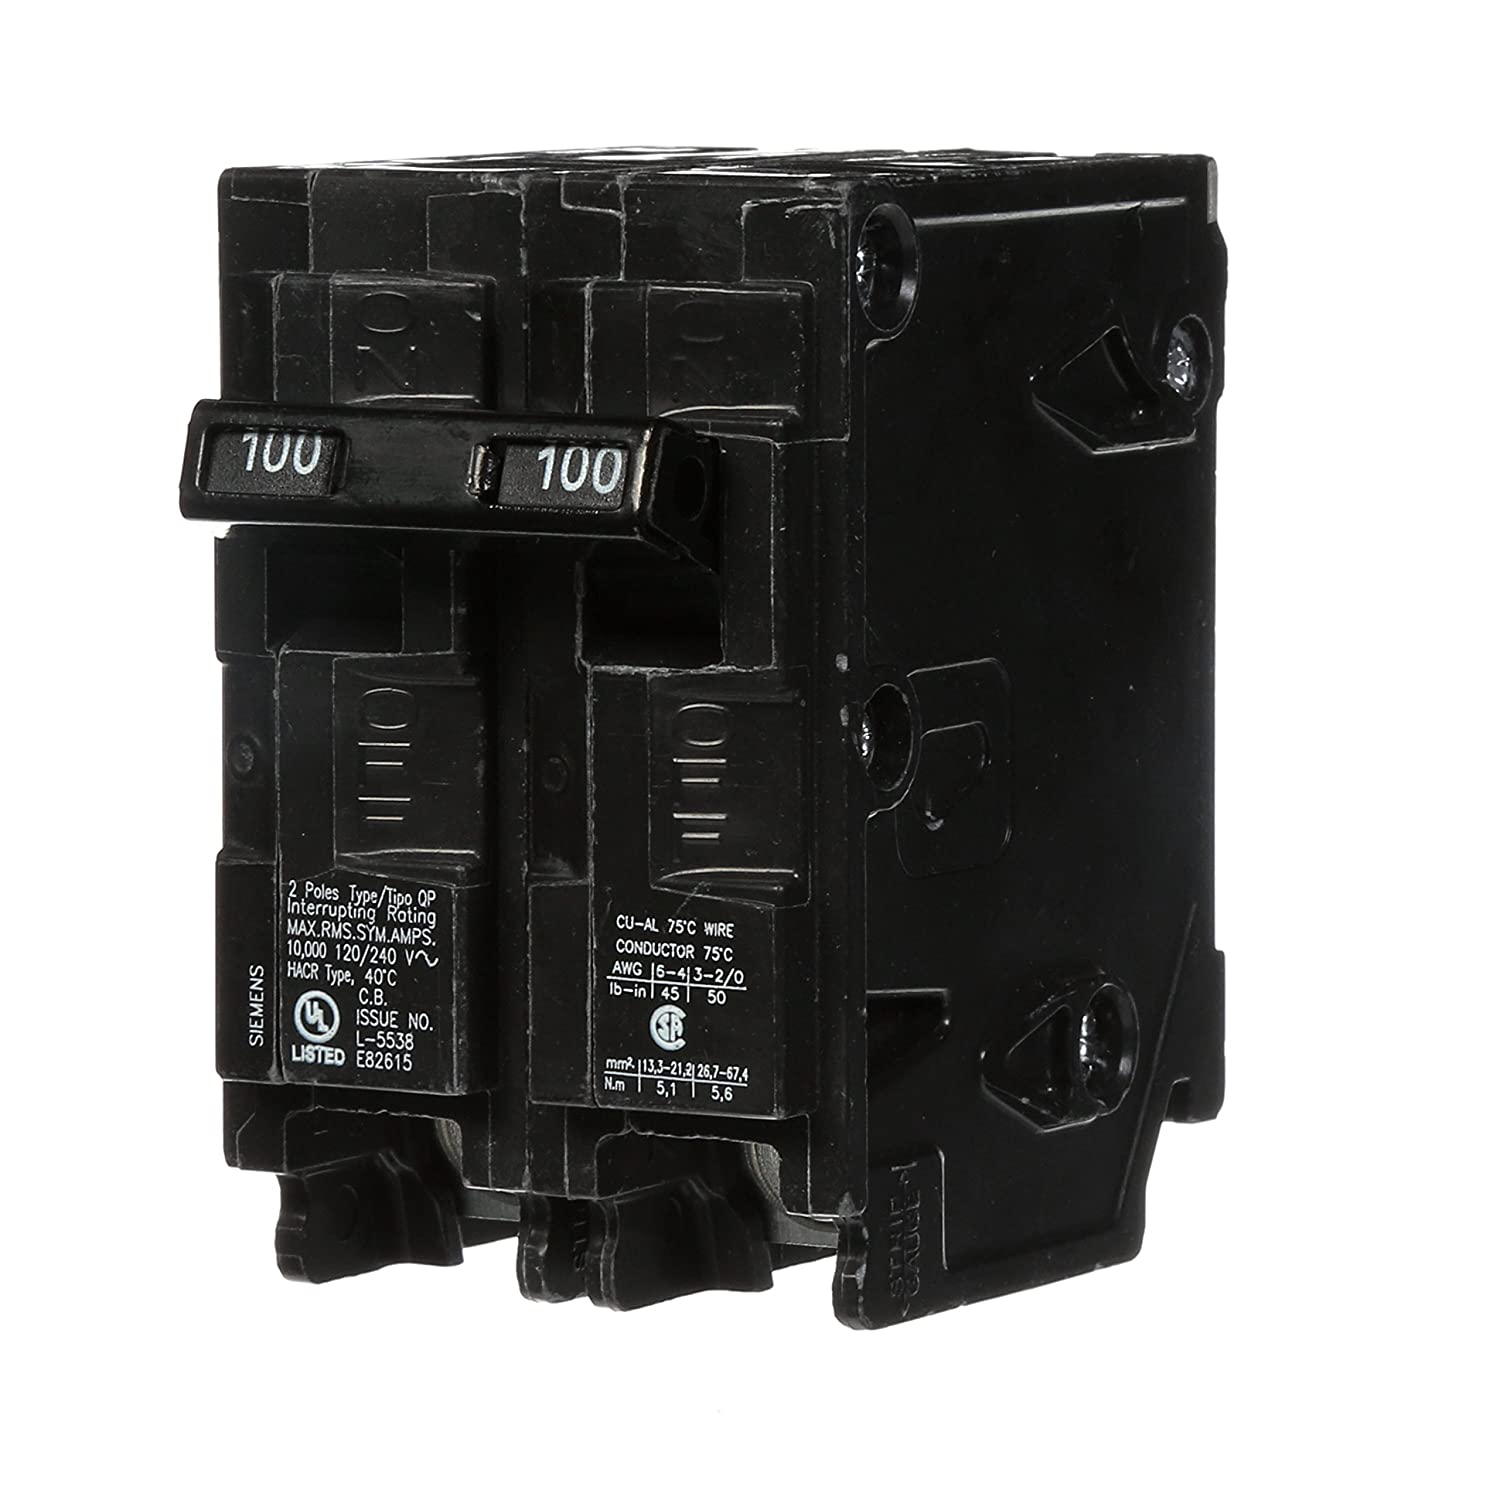 B00002N5HH Q2100 100-Amp Double Pole Type QP Circuit Breaker 81880uh0gtL